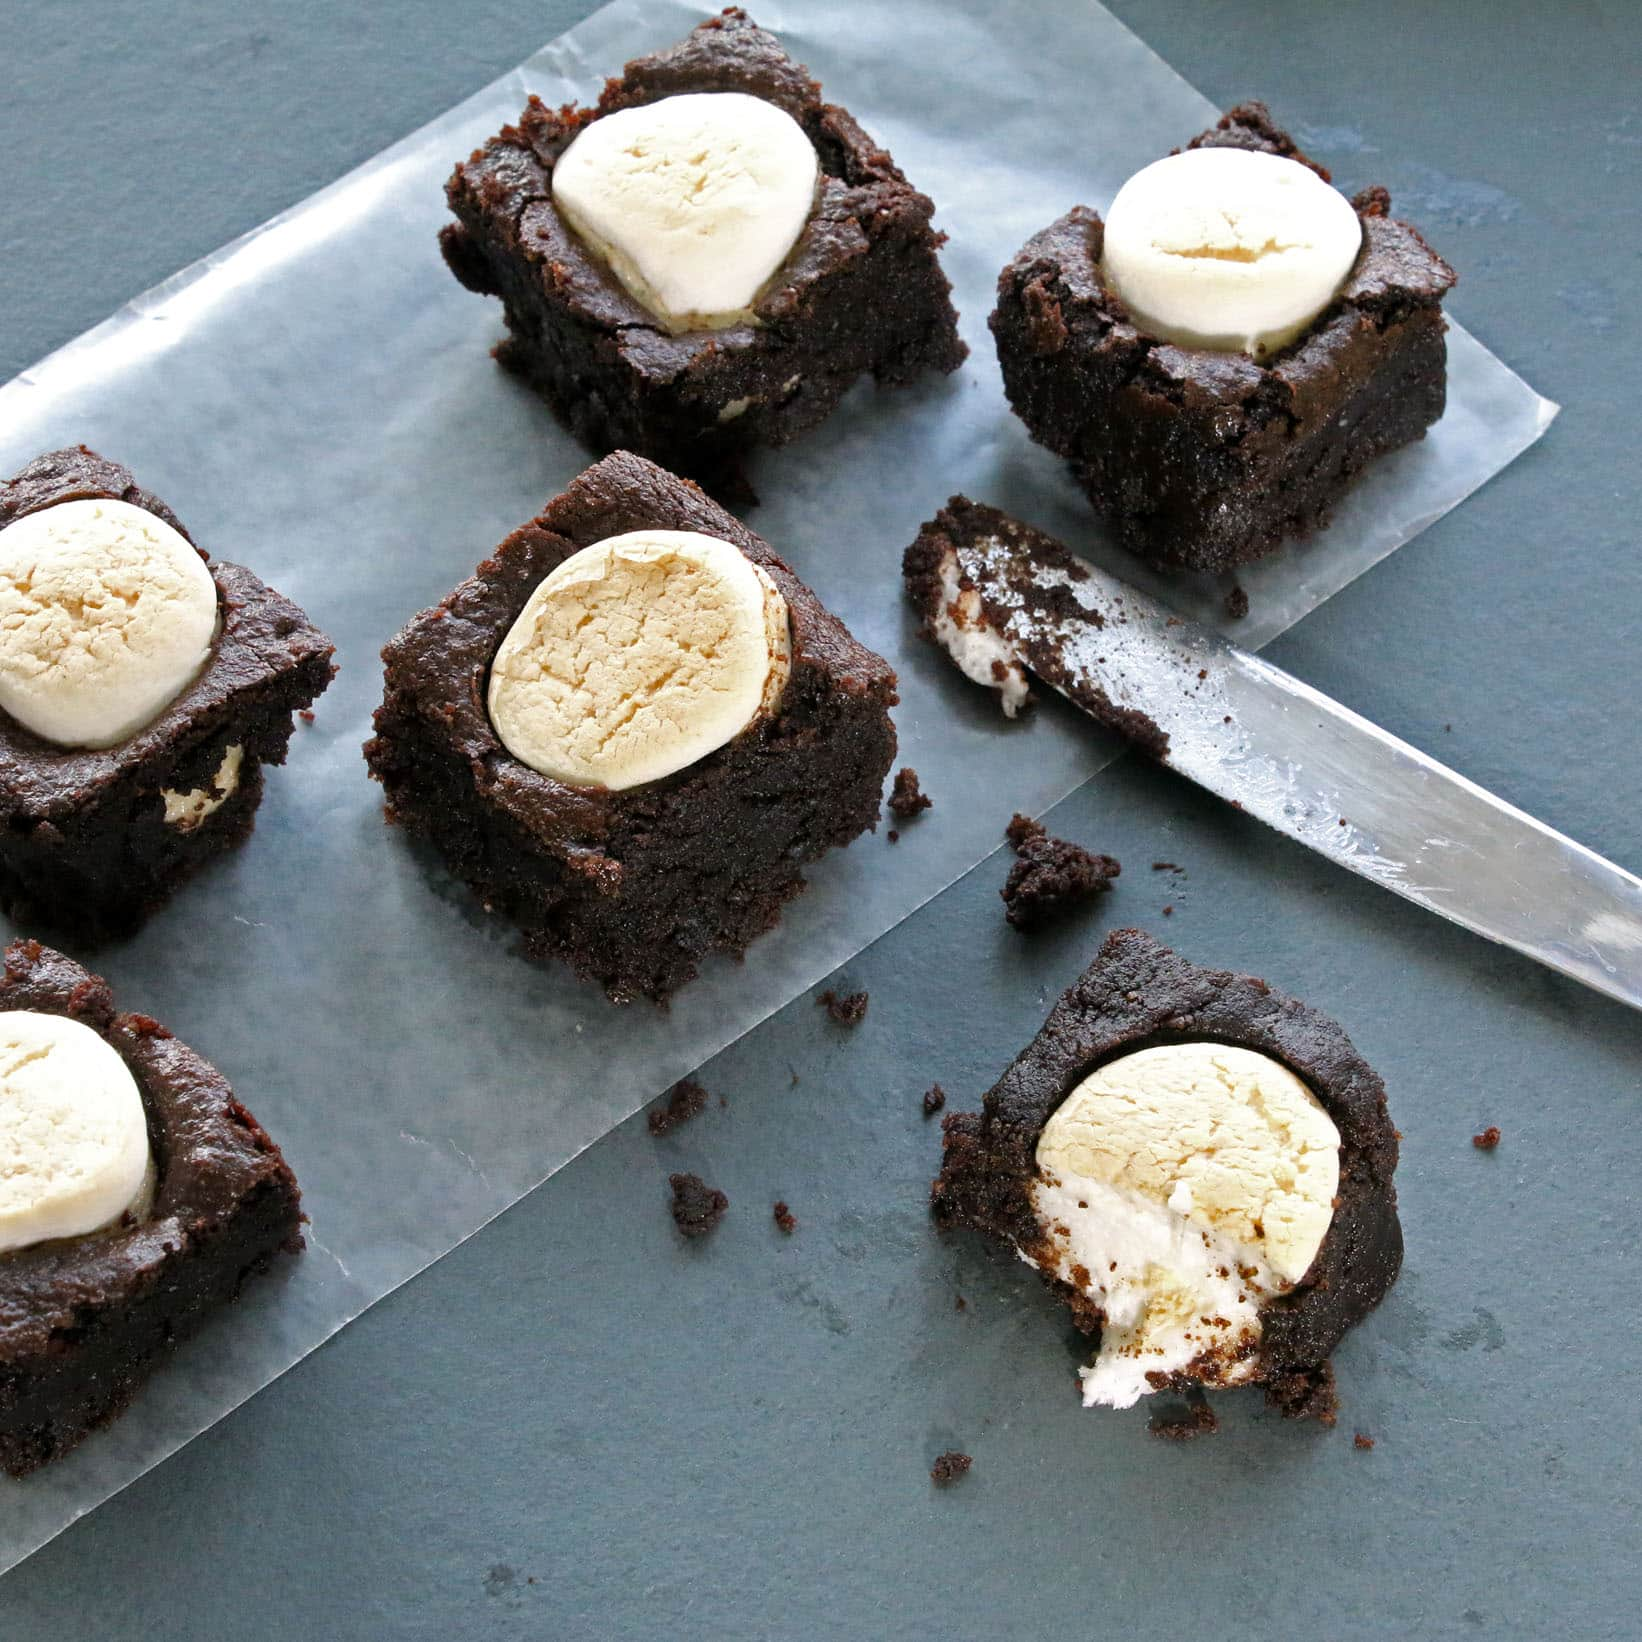 Recipe: Toasted Marshmallow Brownies (Gluten-free, Bean-free, Vegan / Plant-Based, Refined Sugar-free)